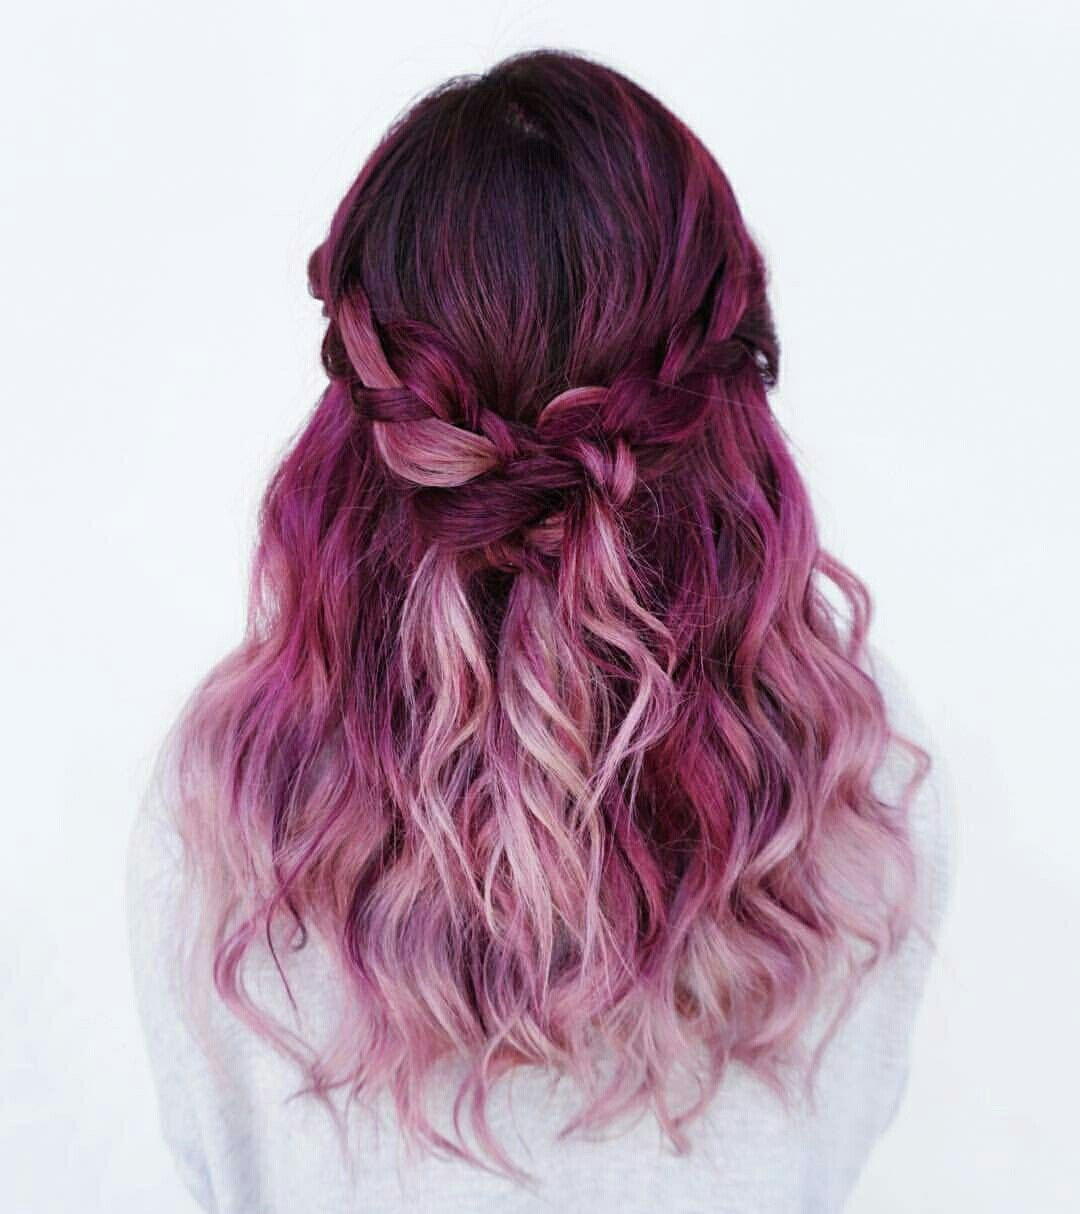 Brightombrehair Ombre Hair Ideas in Pinterest Hair Dyed